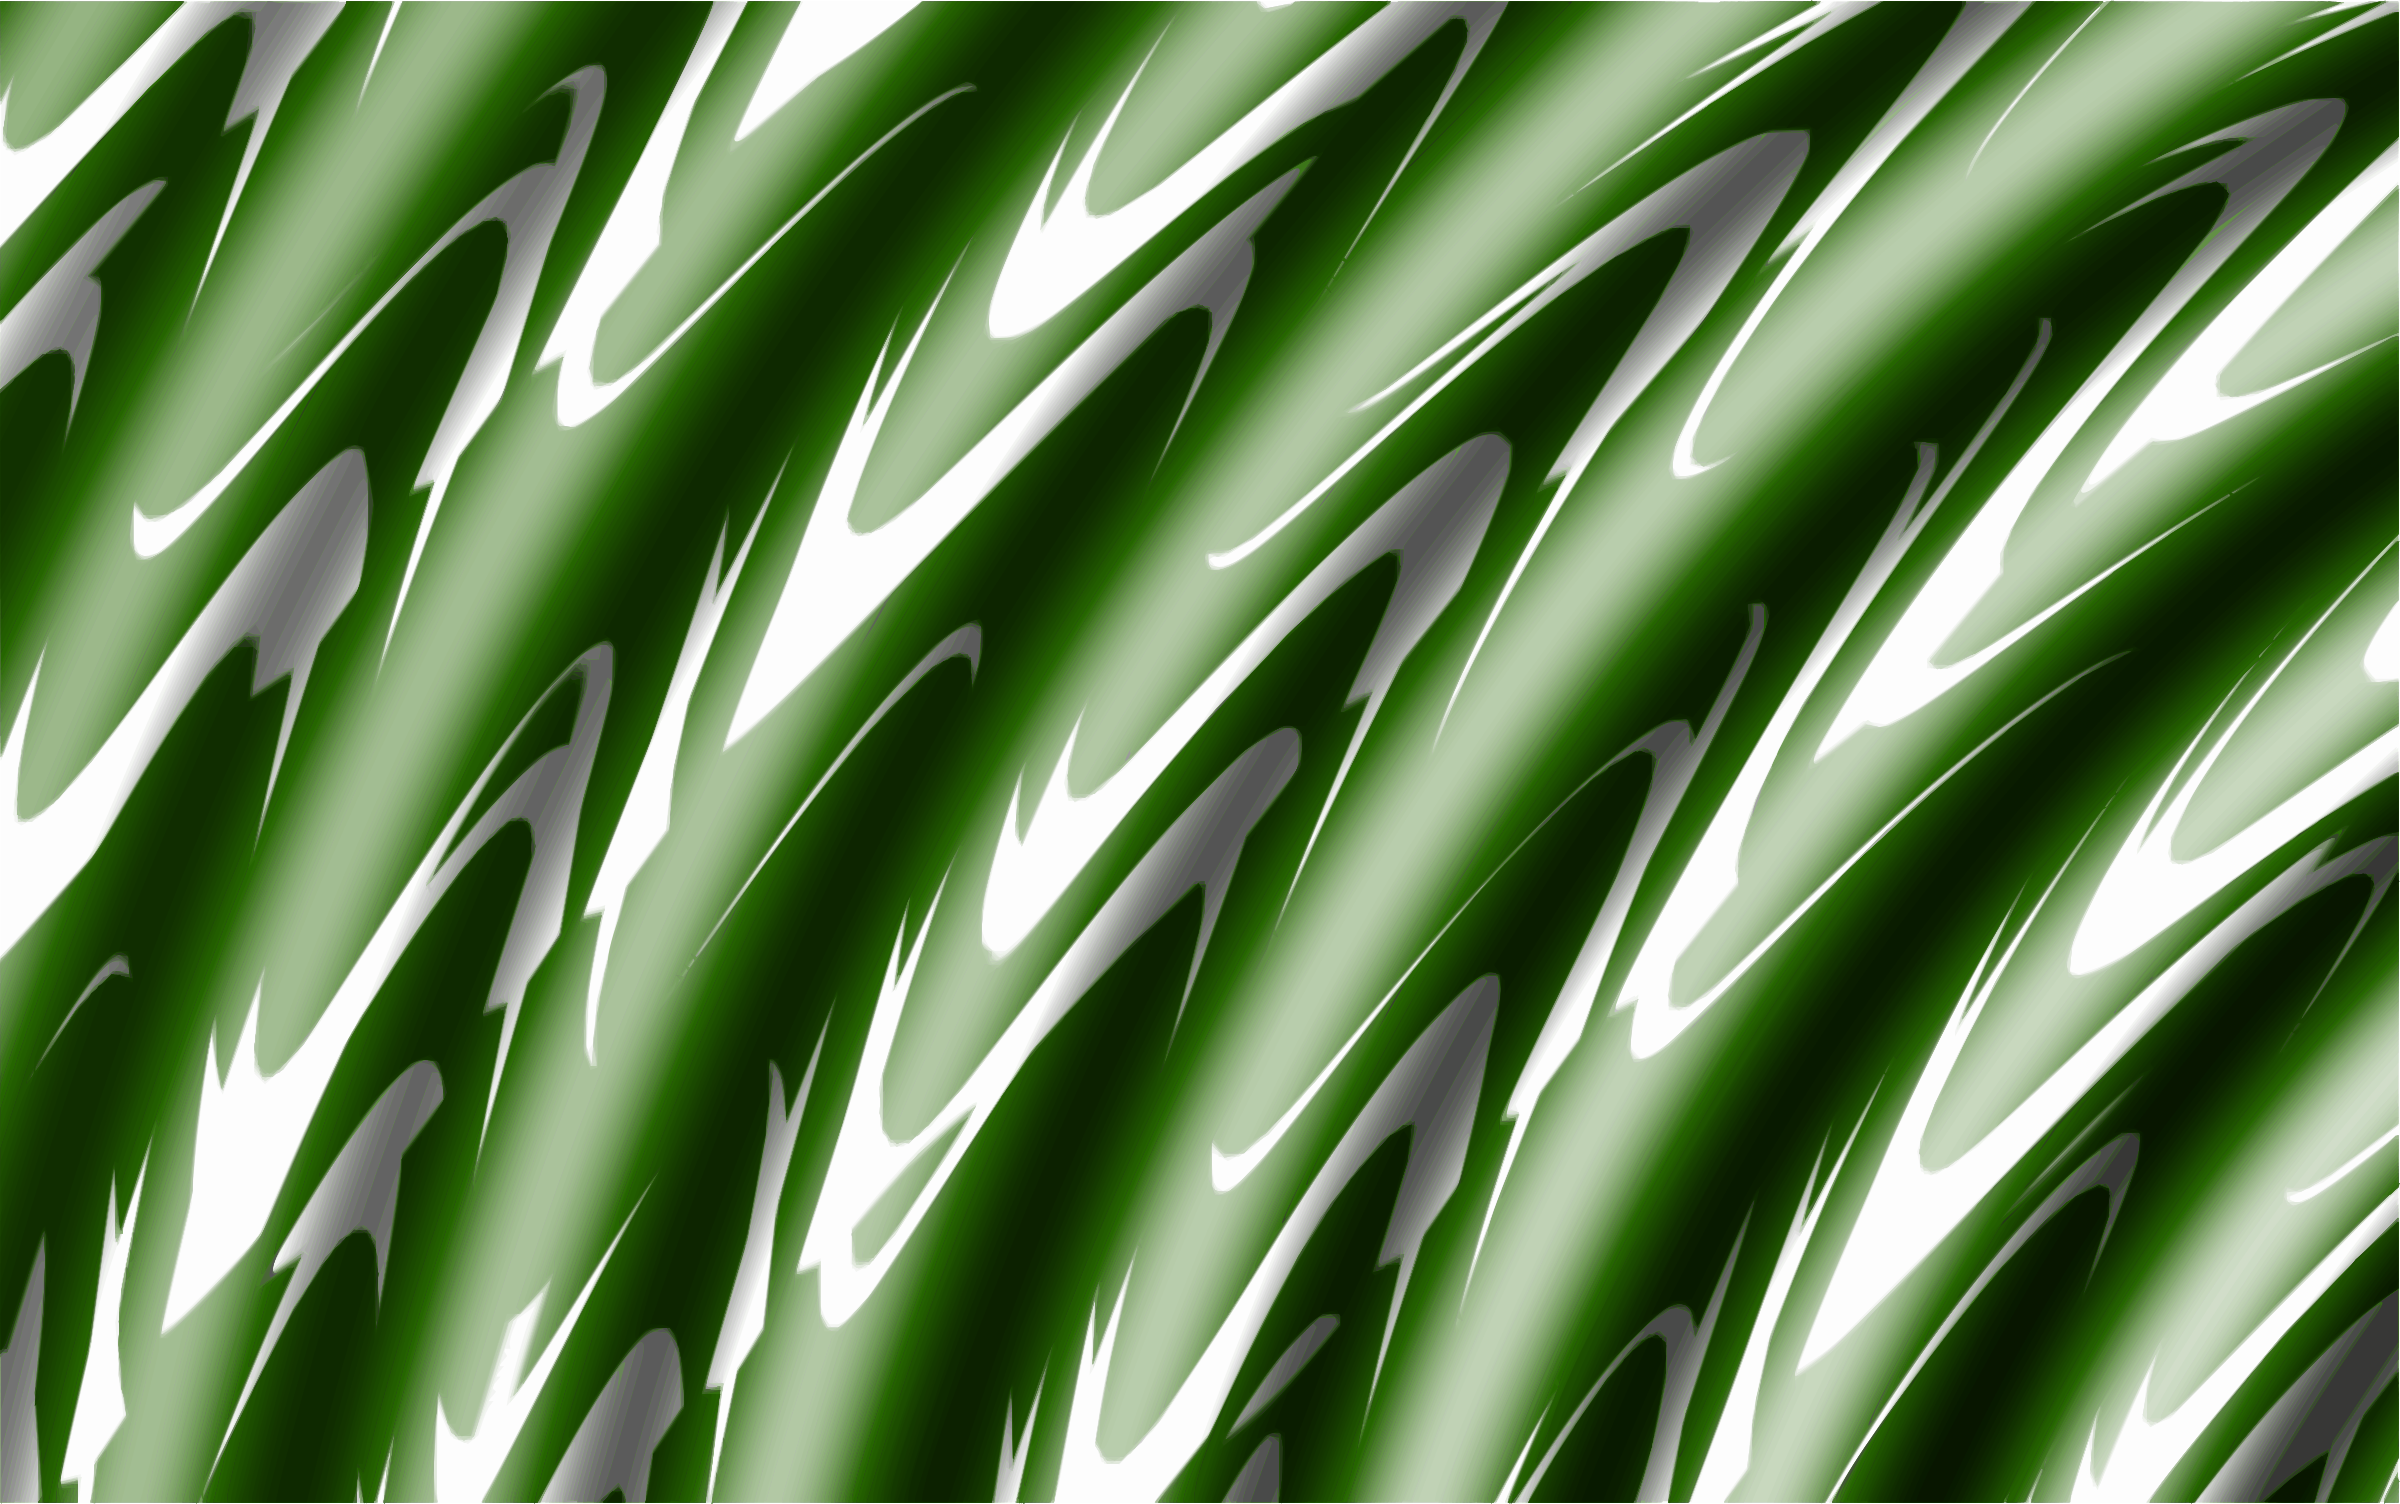 Background pattern 144 (colour 3) by Firkin